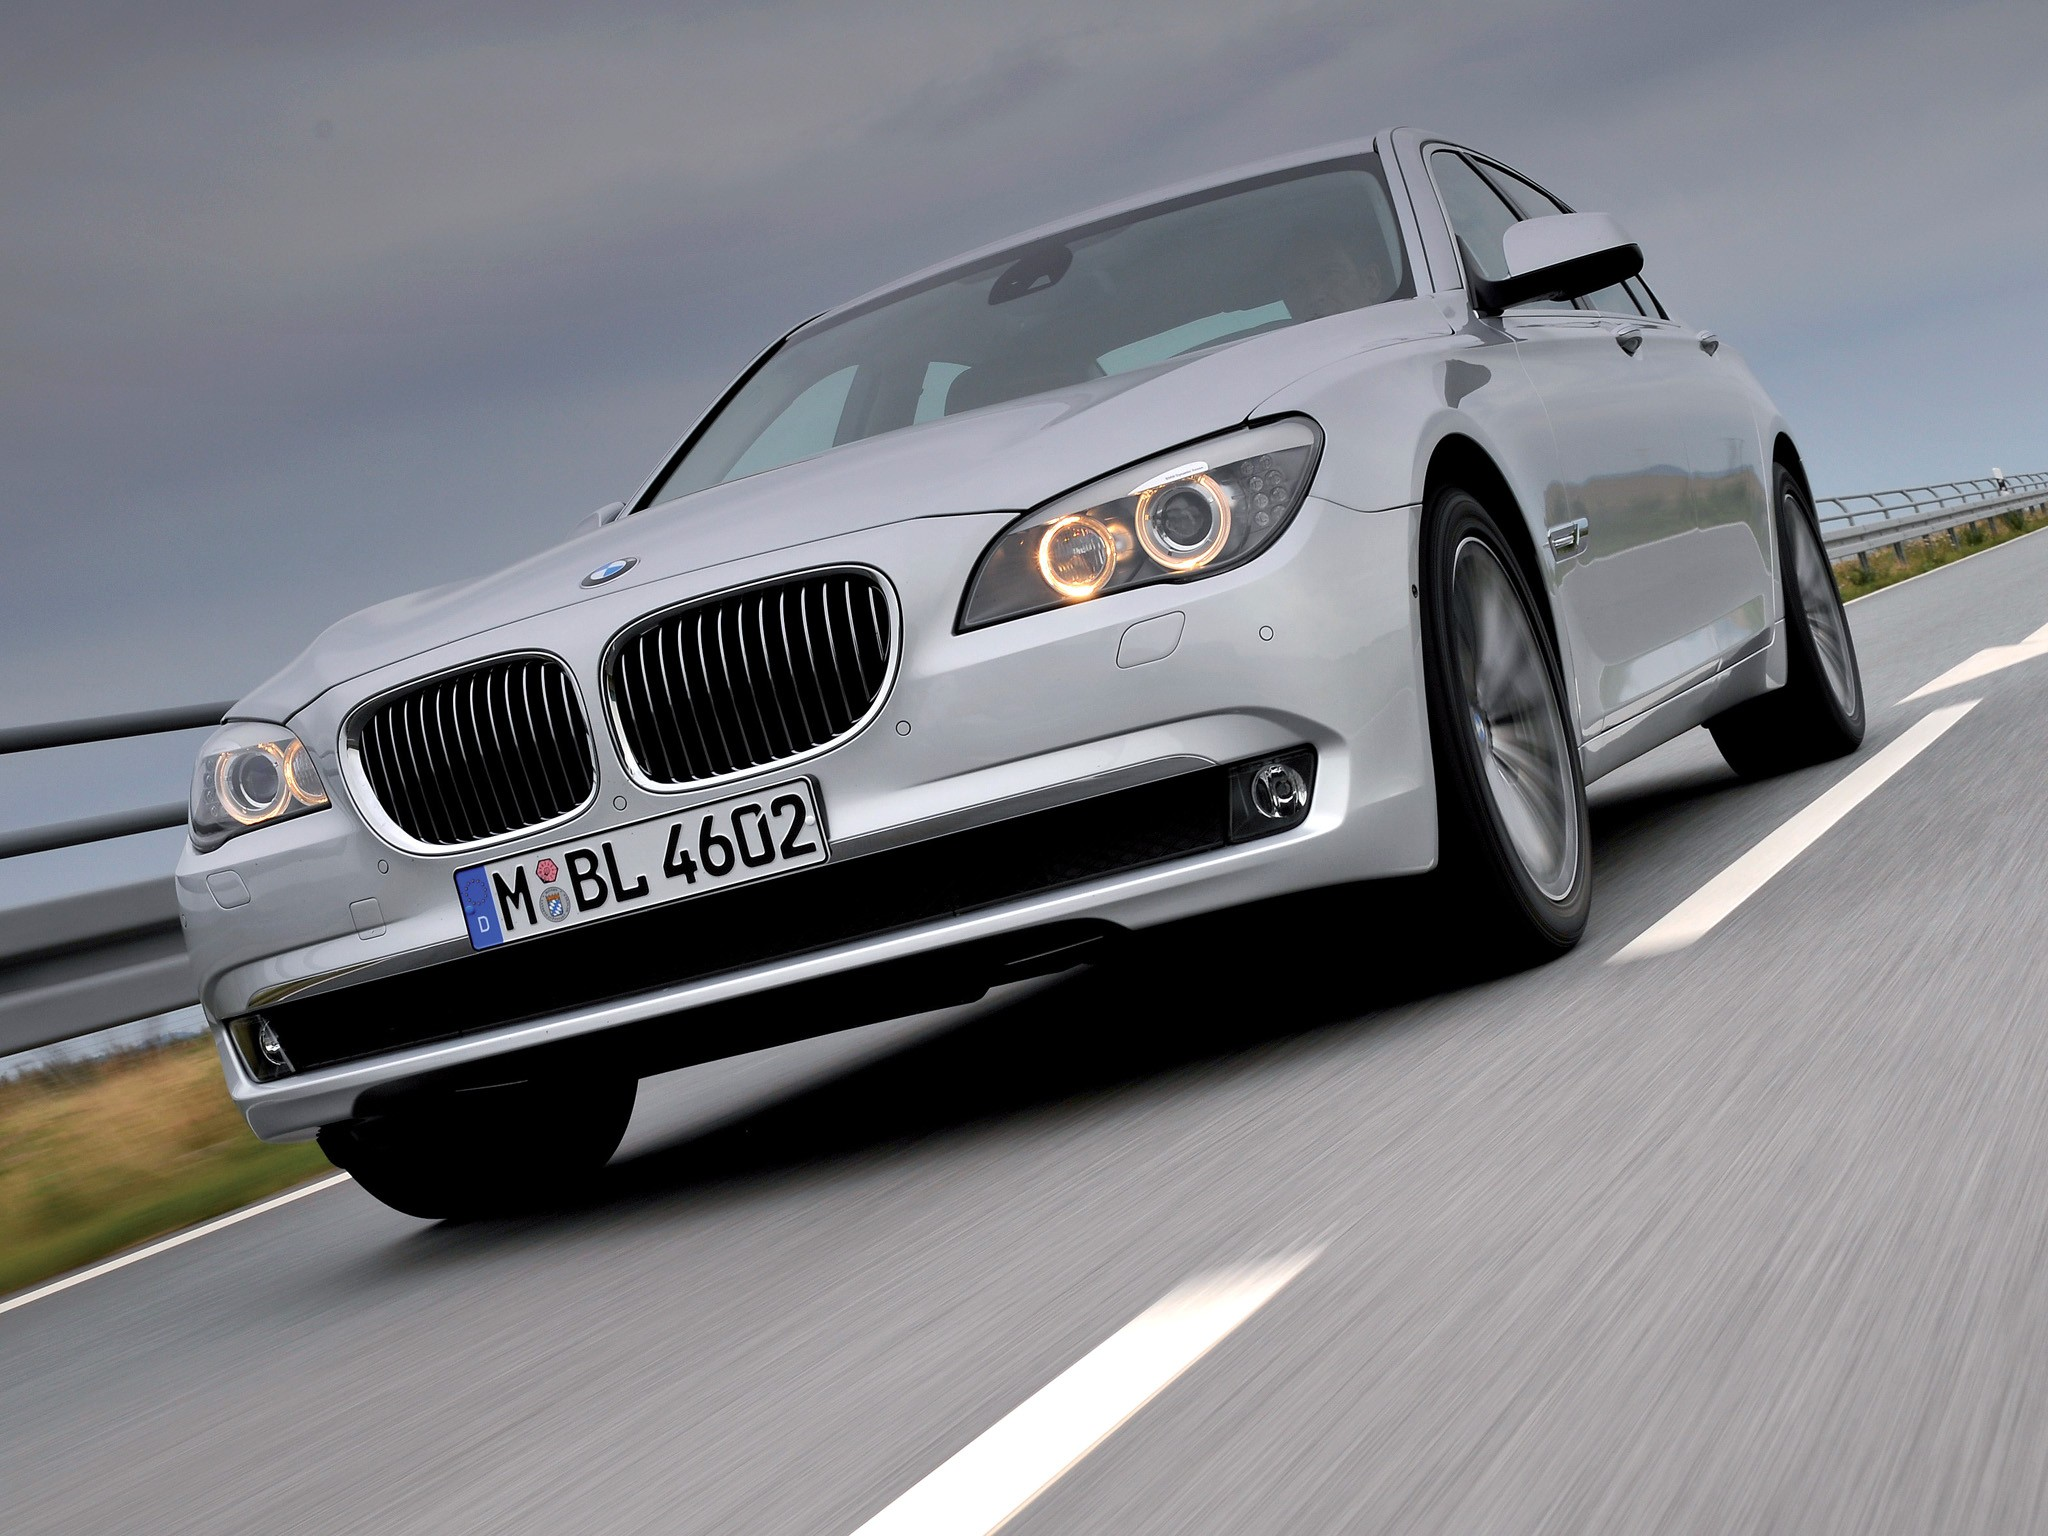 Bmw 730d 2008 Review Amazing Pictures And Images Look